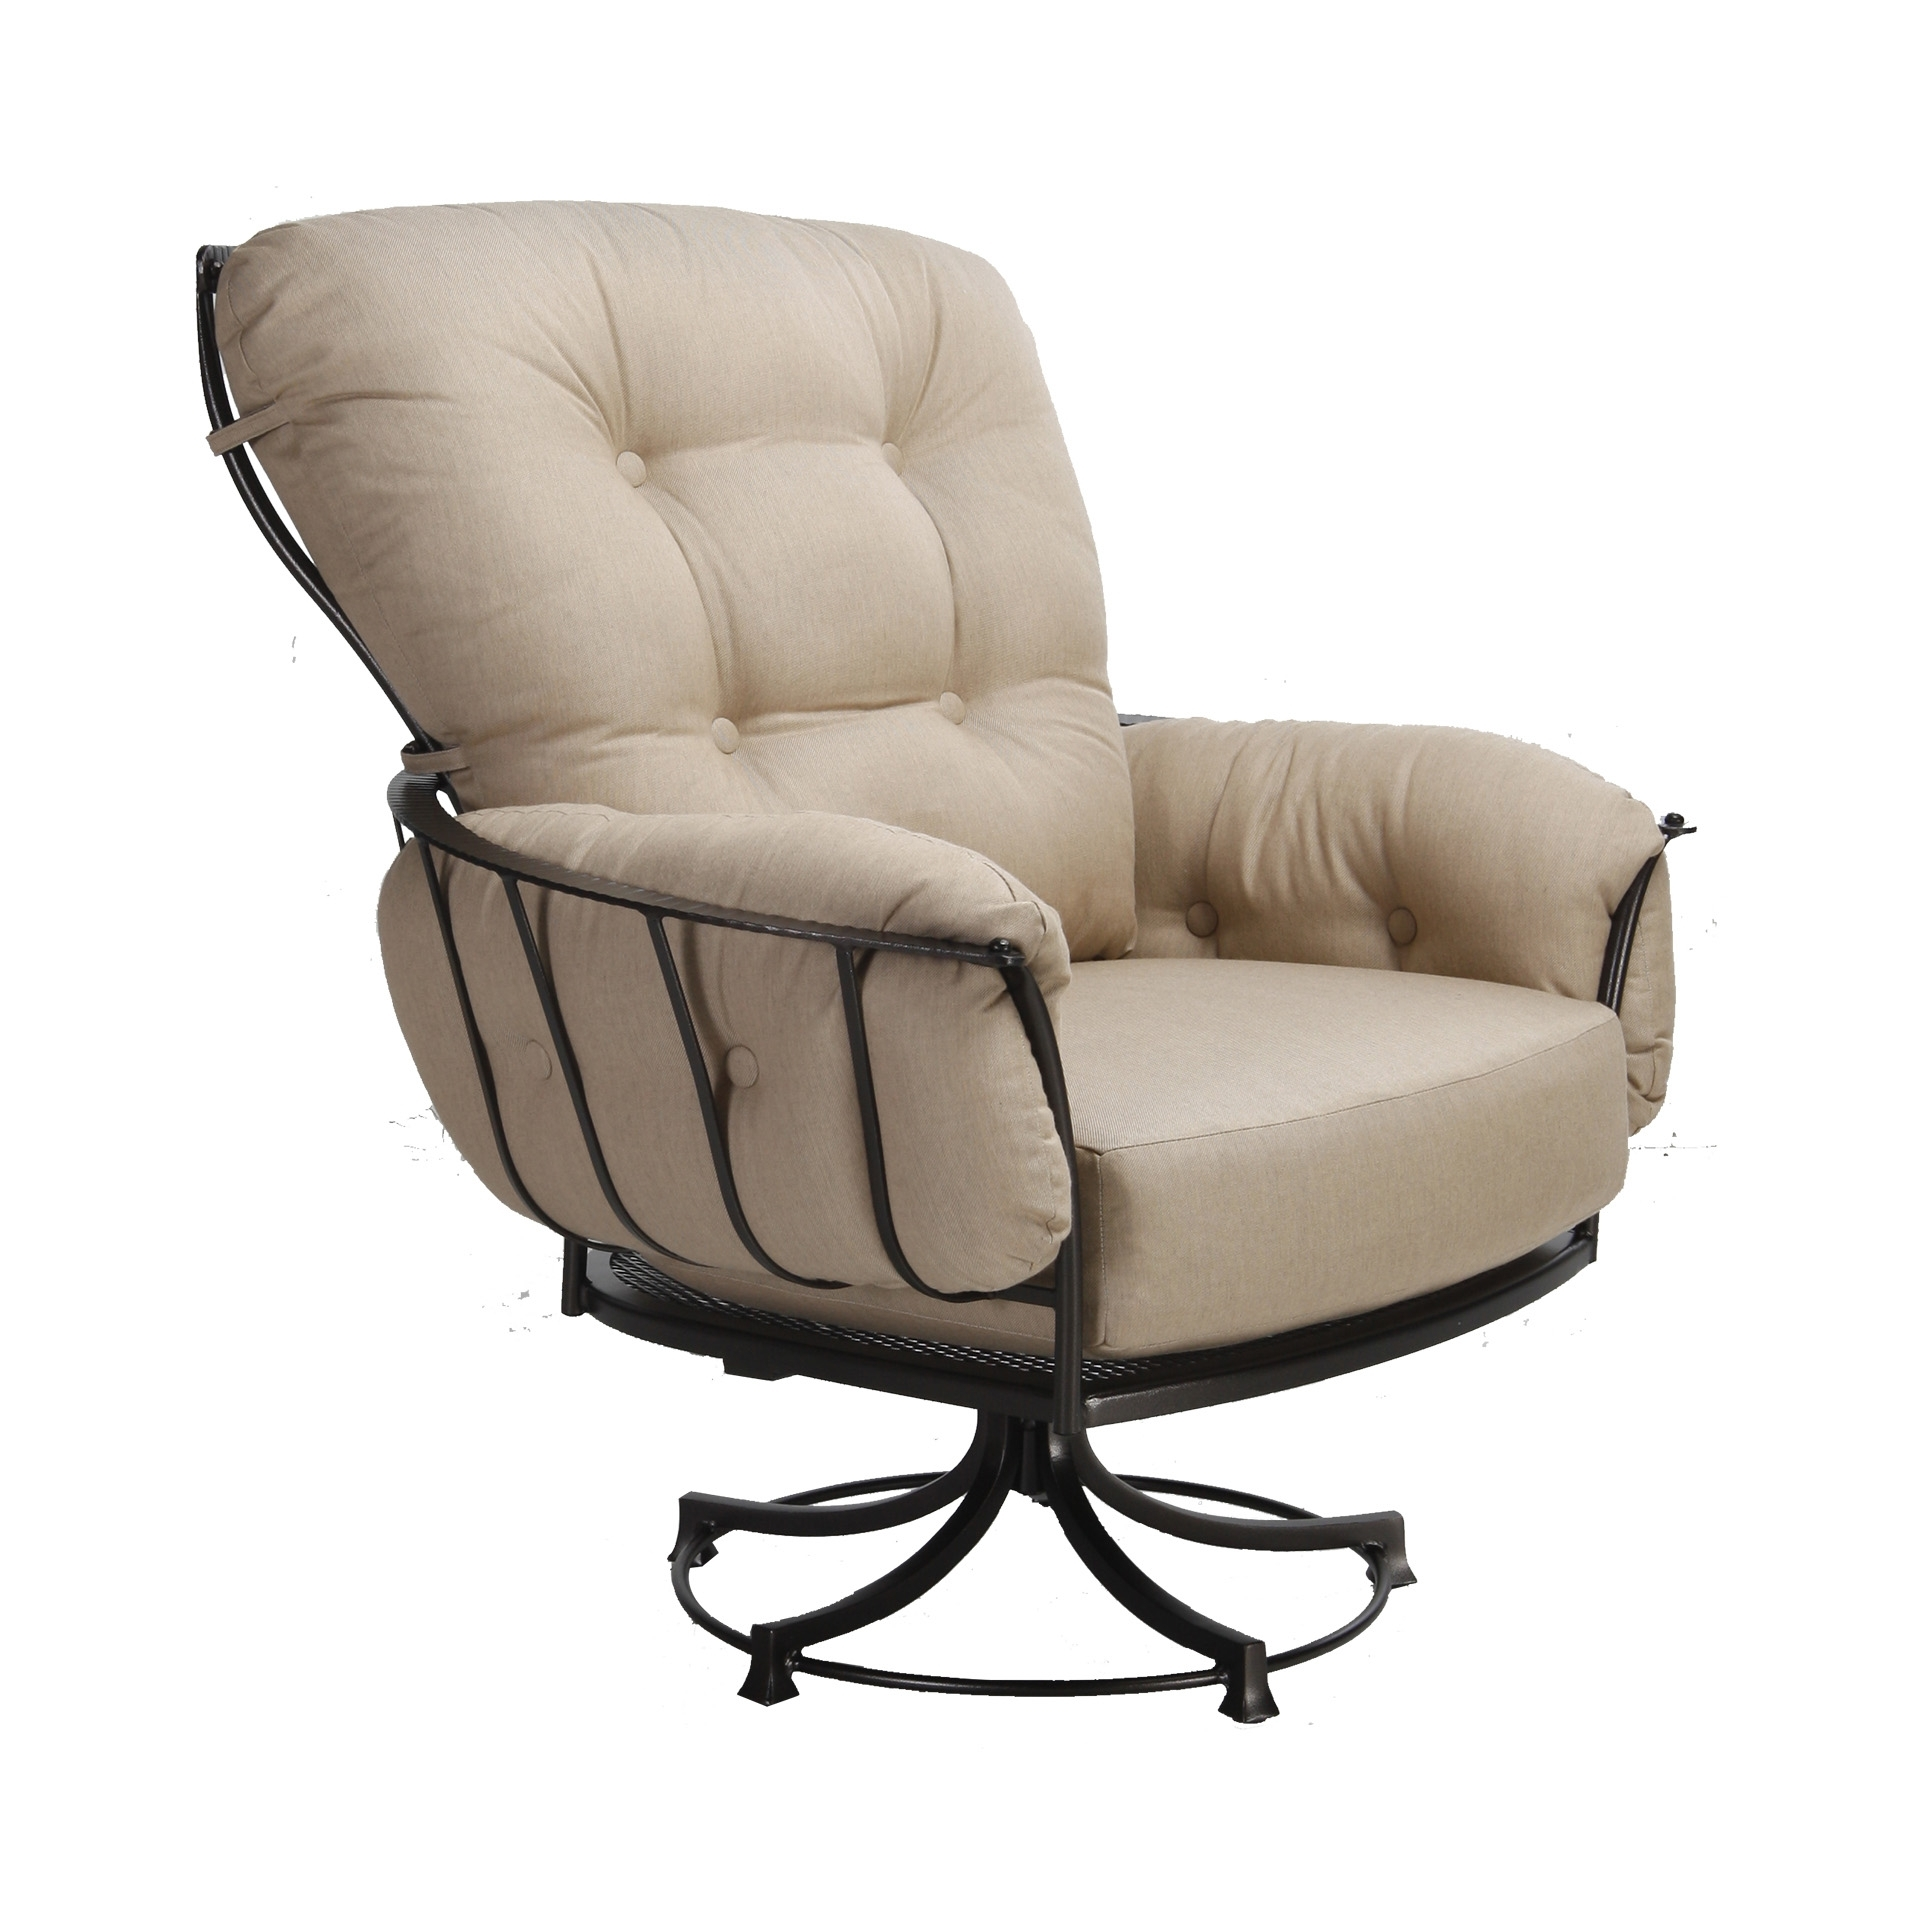 Swivel Rocker Lounge Chair | Fishbecks Patio Furniture Store Pasadena Throughout Patio Rocking Swivel Chairs (#15 of 15)